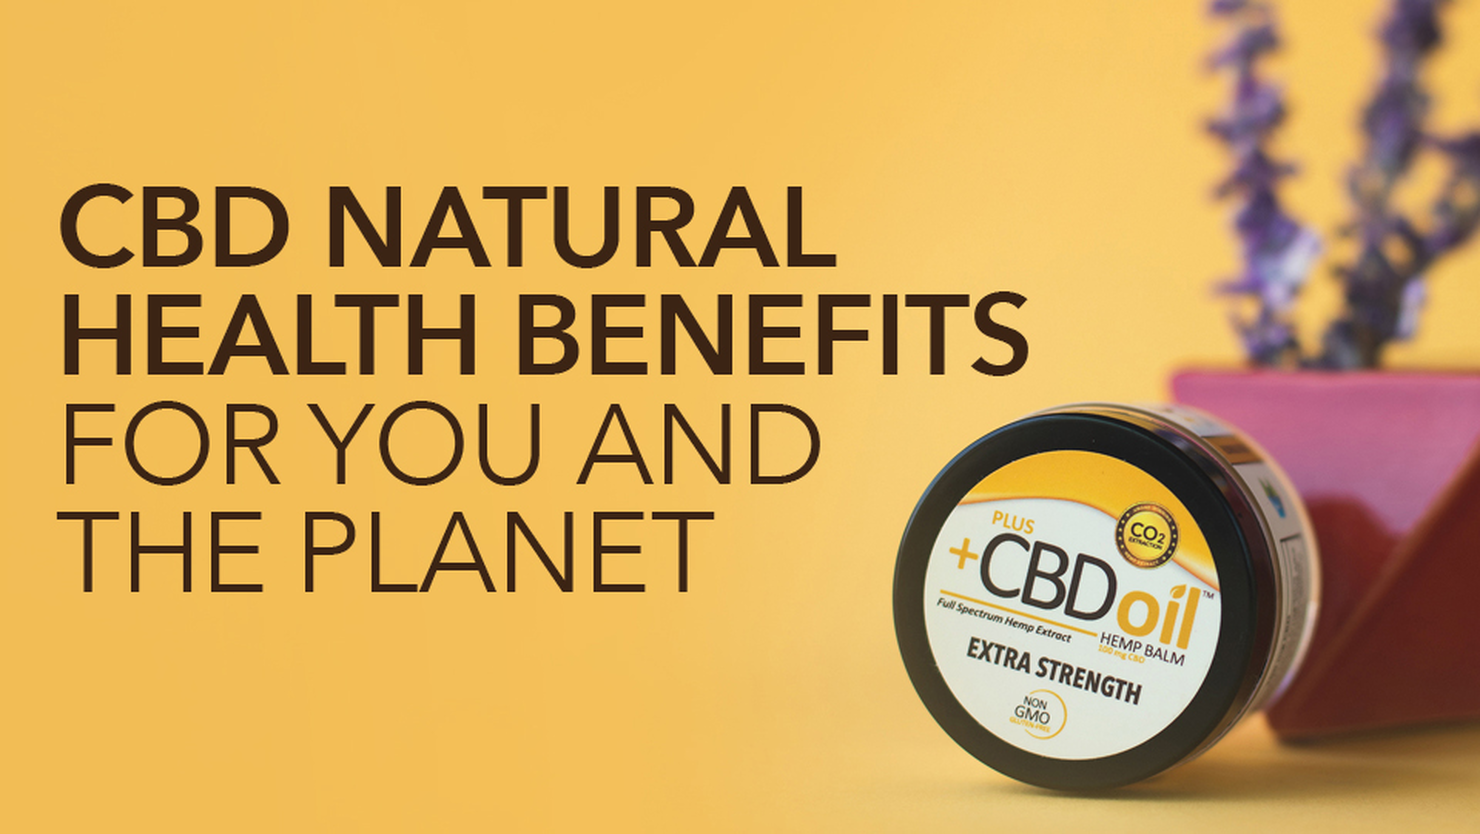 CBD Oil Benefits For You and the Planet